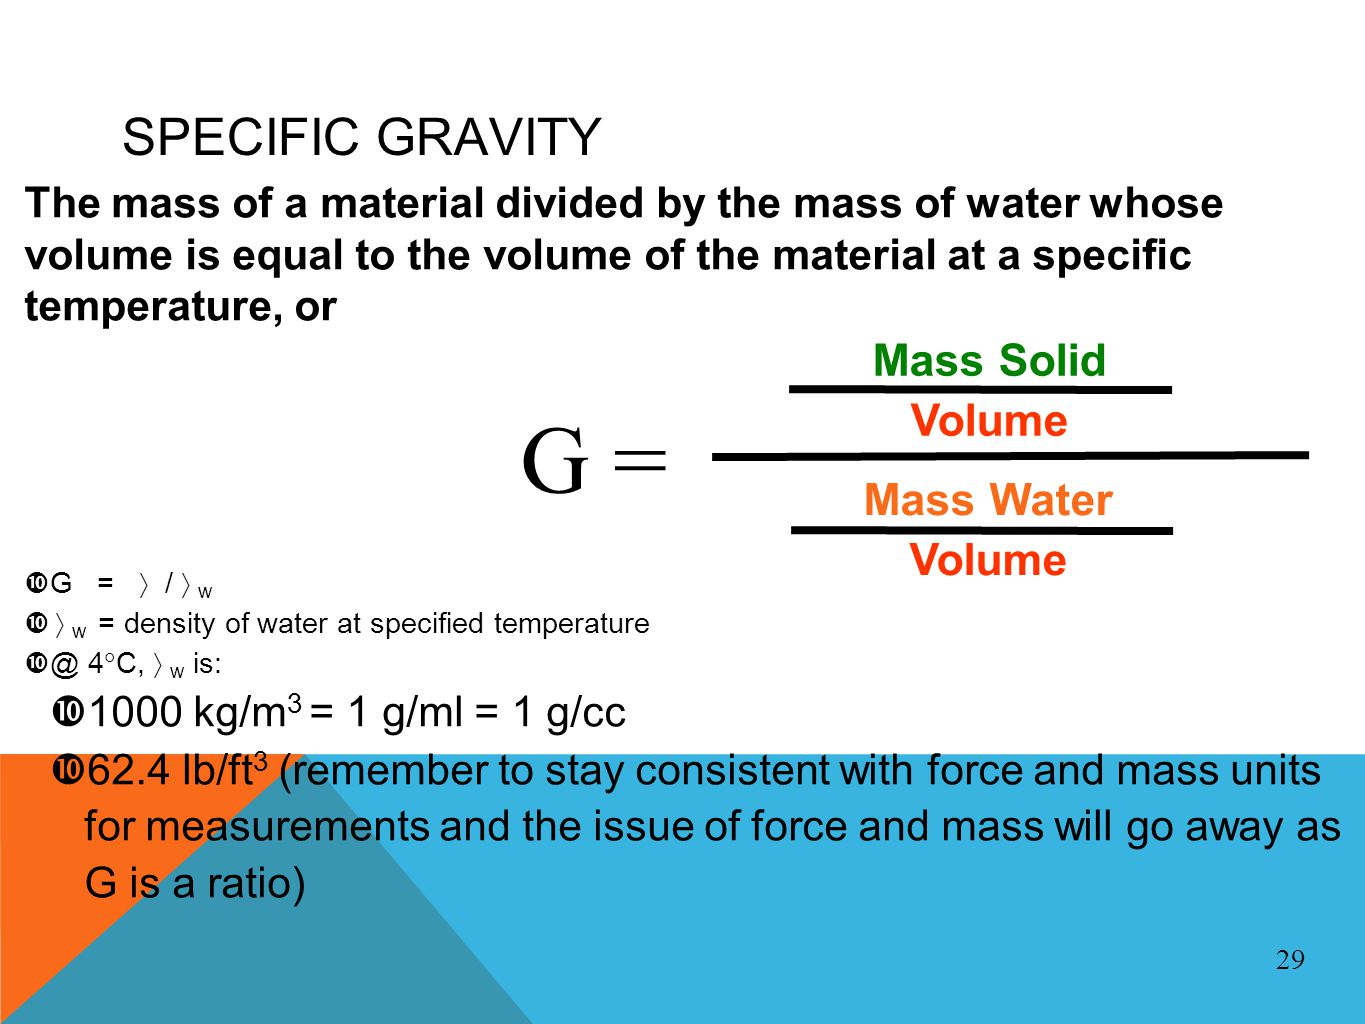 SPECIFIC GRAVITY The mass of a material divided by the mass of water whose volume is equal to the volume of the material at a specific temperature, or